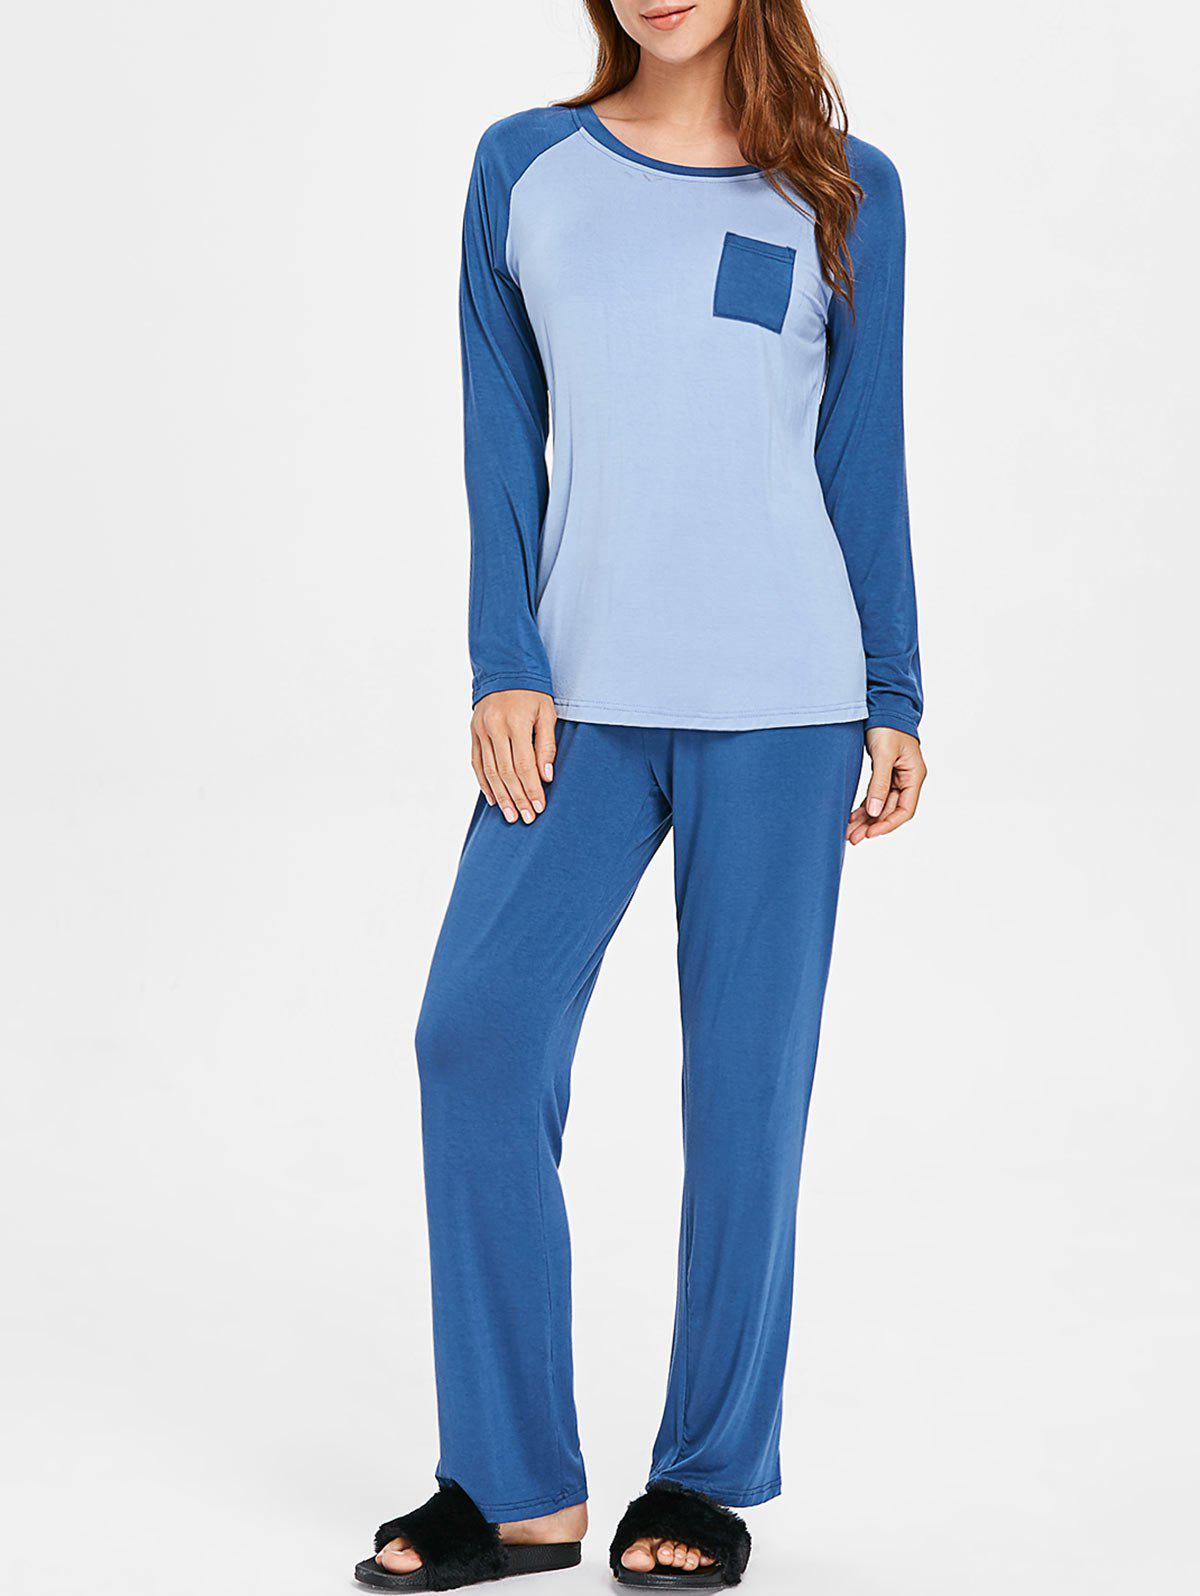 Chic Two Tone Long Sleeves Sleepwear Set with Pocket